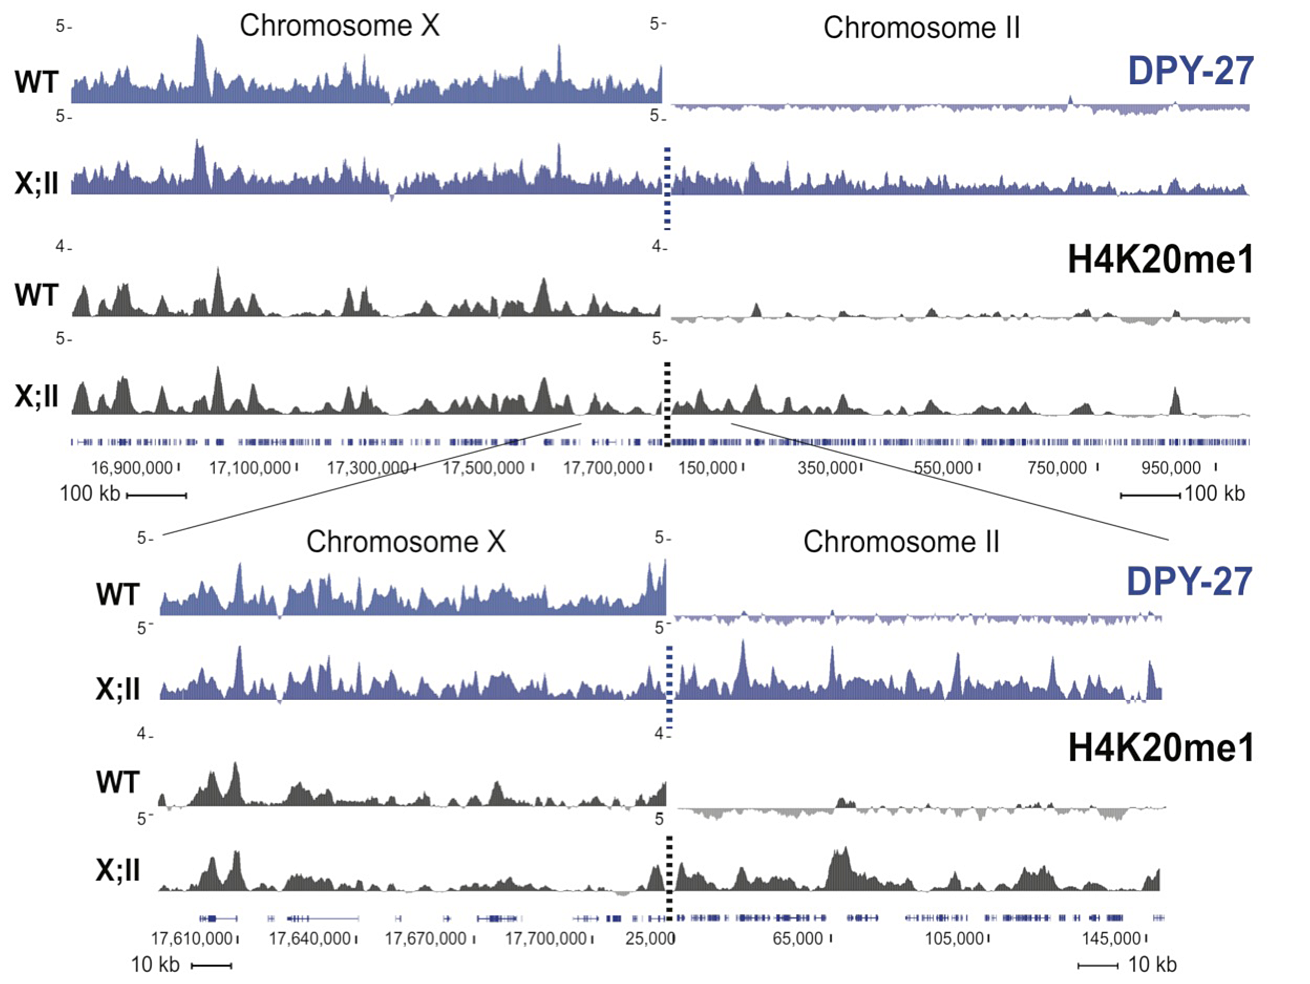 H4K20me1 ectopically spreads onto the autosomal region of an X;II fusion chromosome.